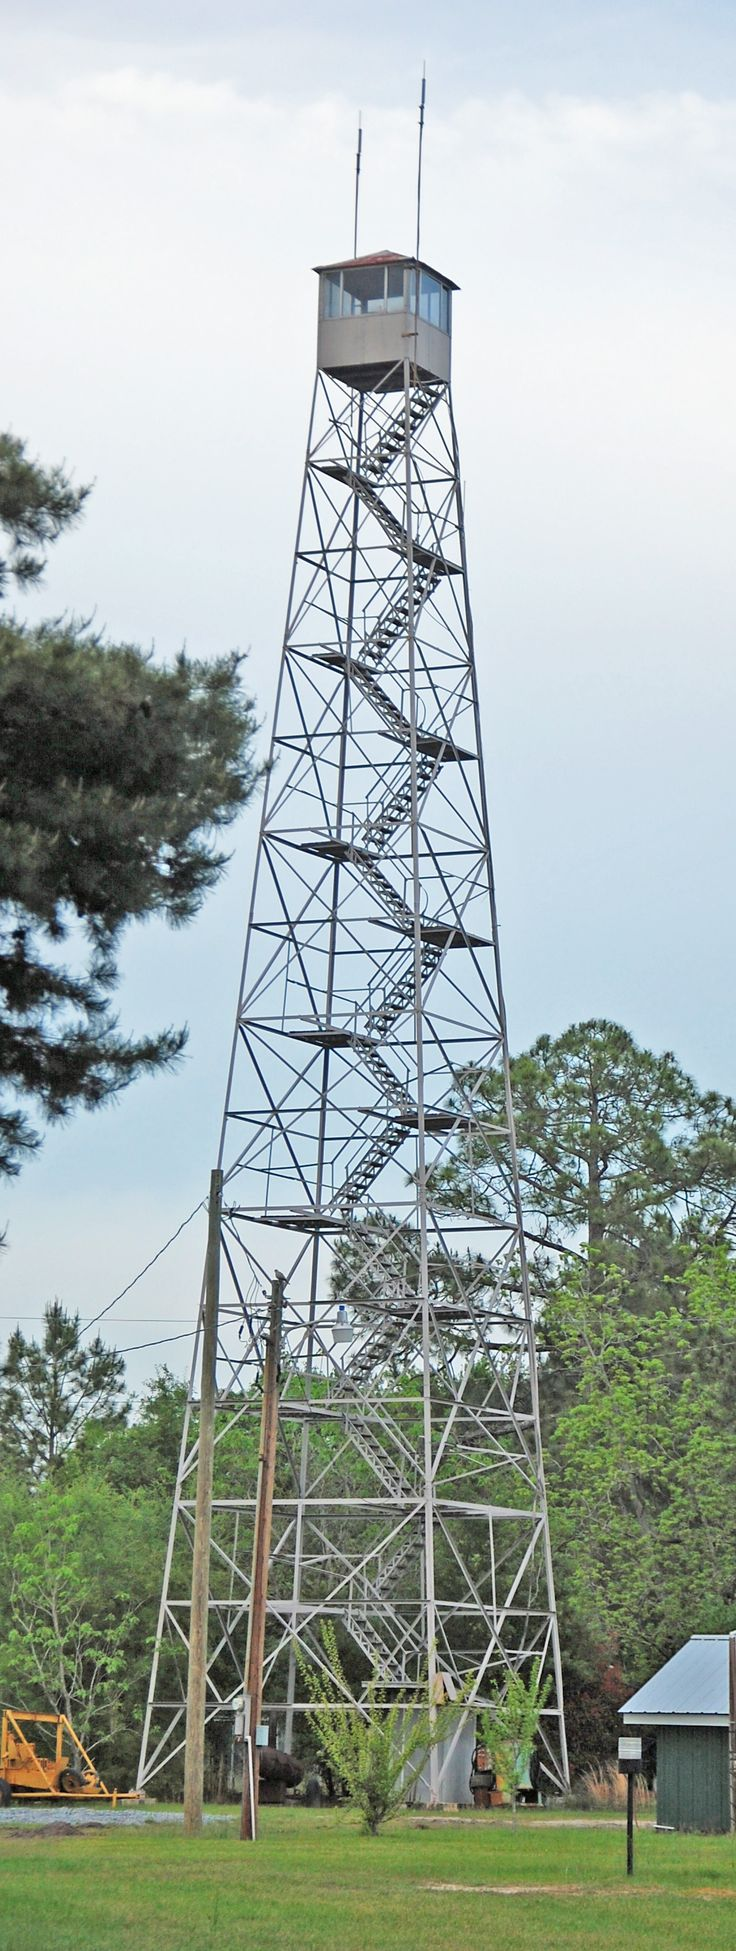 Fire_lookout_tower_in_south_Georgia,_USA.JPG (1126×2985)